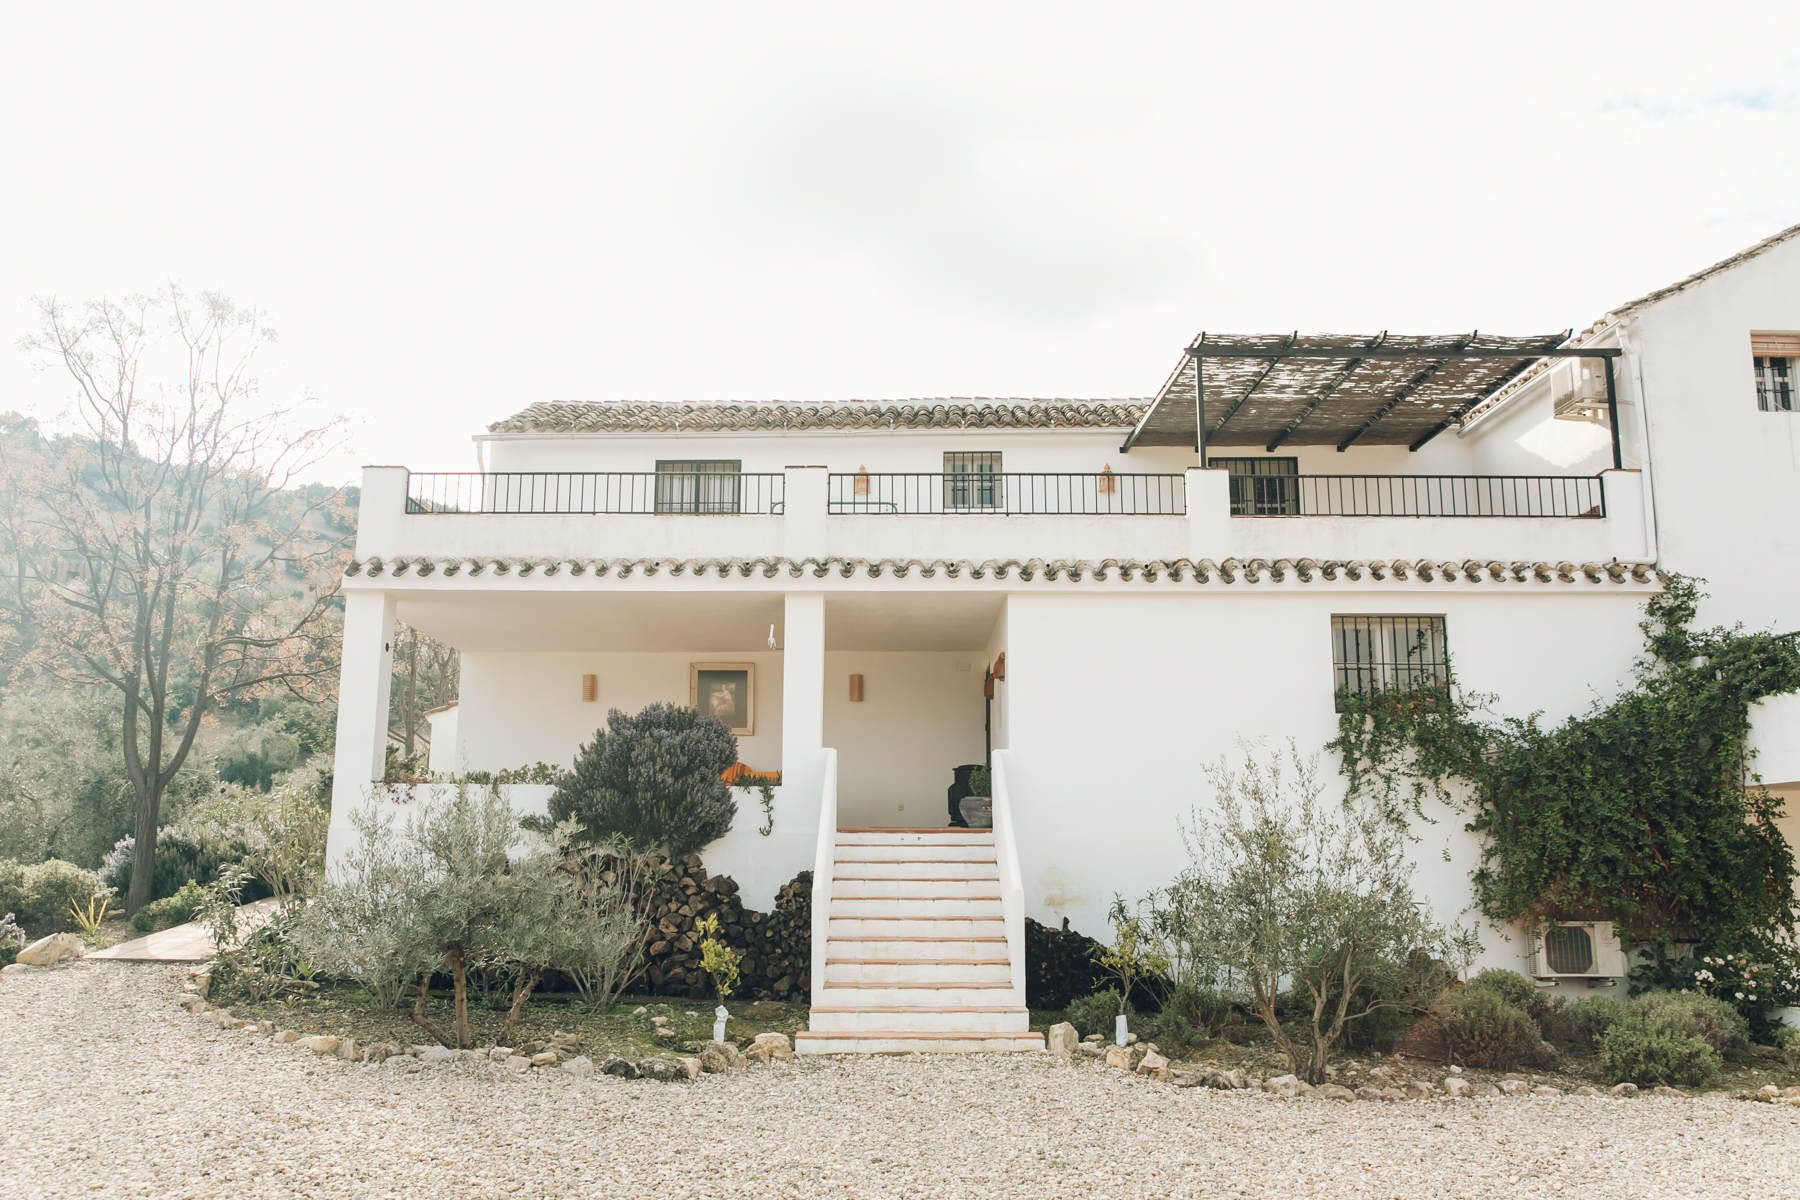 Our Spanish casa in Andalusia.